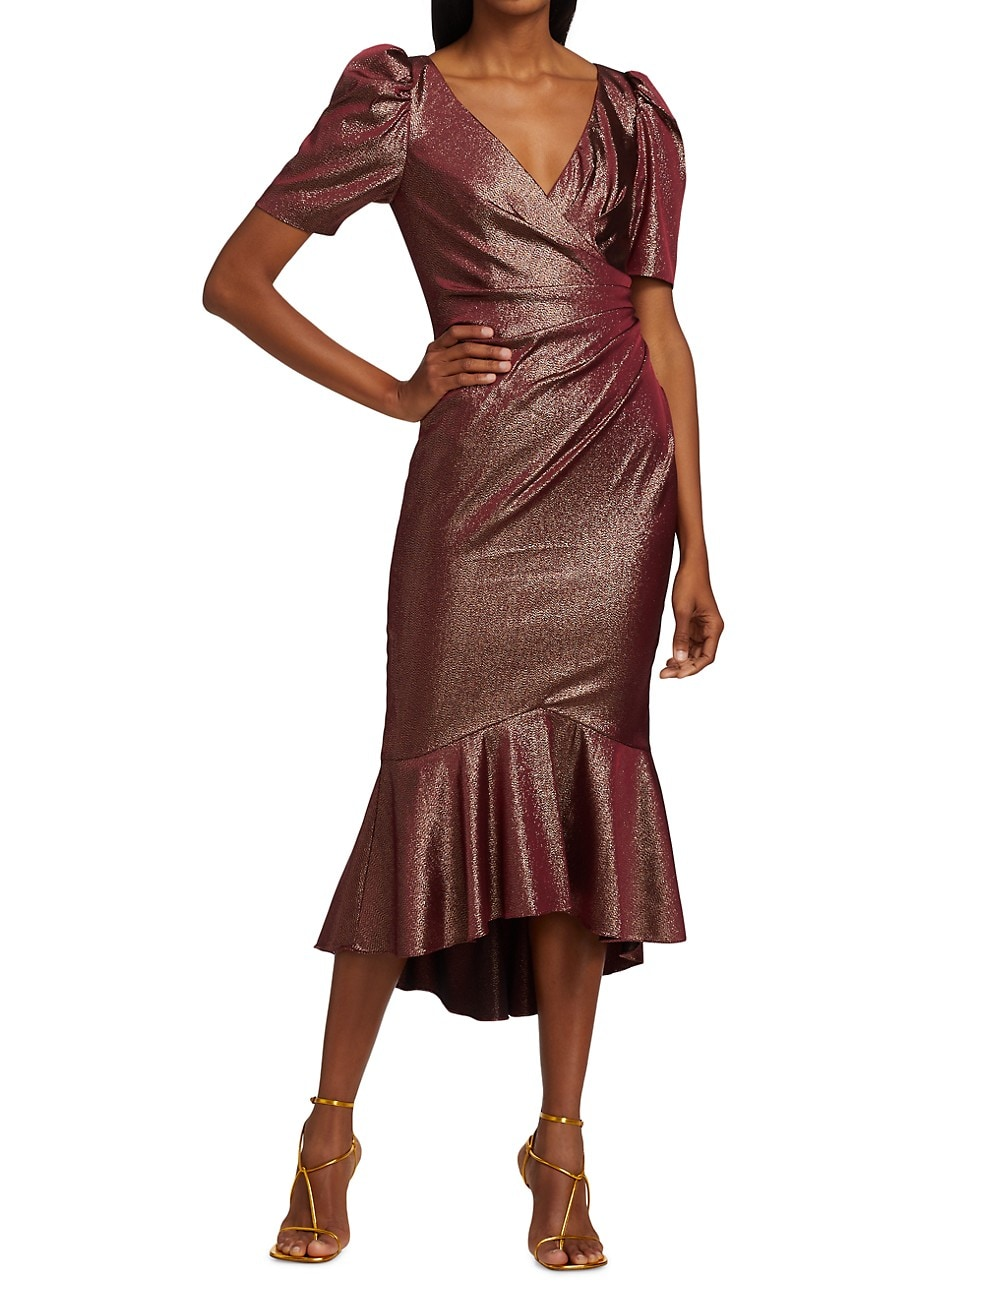 Fall midi dress with shimmering metallic copper fabric and puff sleeves.